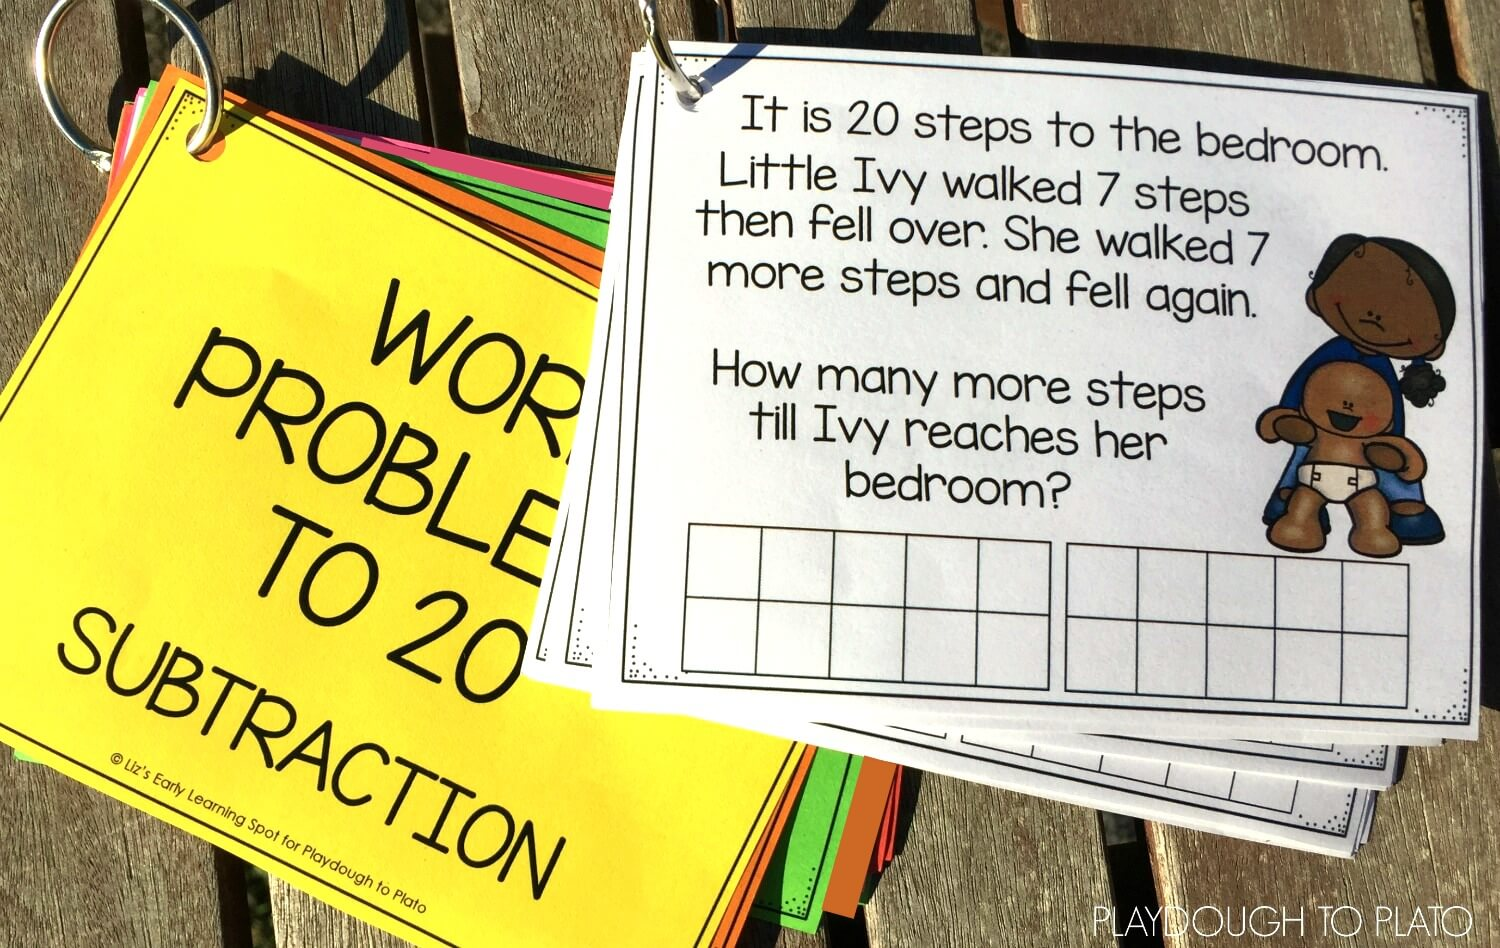 worksheet Subtraction Word Problems subtraction word problems to 20 playdough plato free story problems